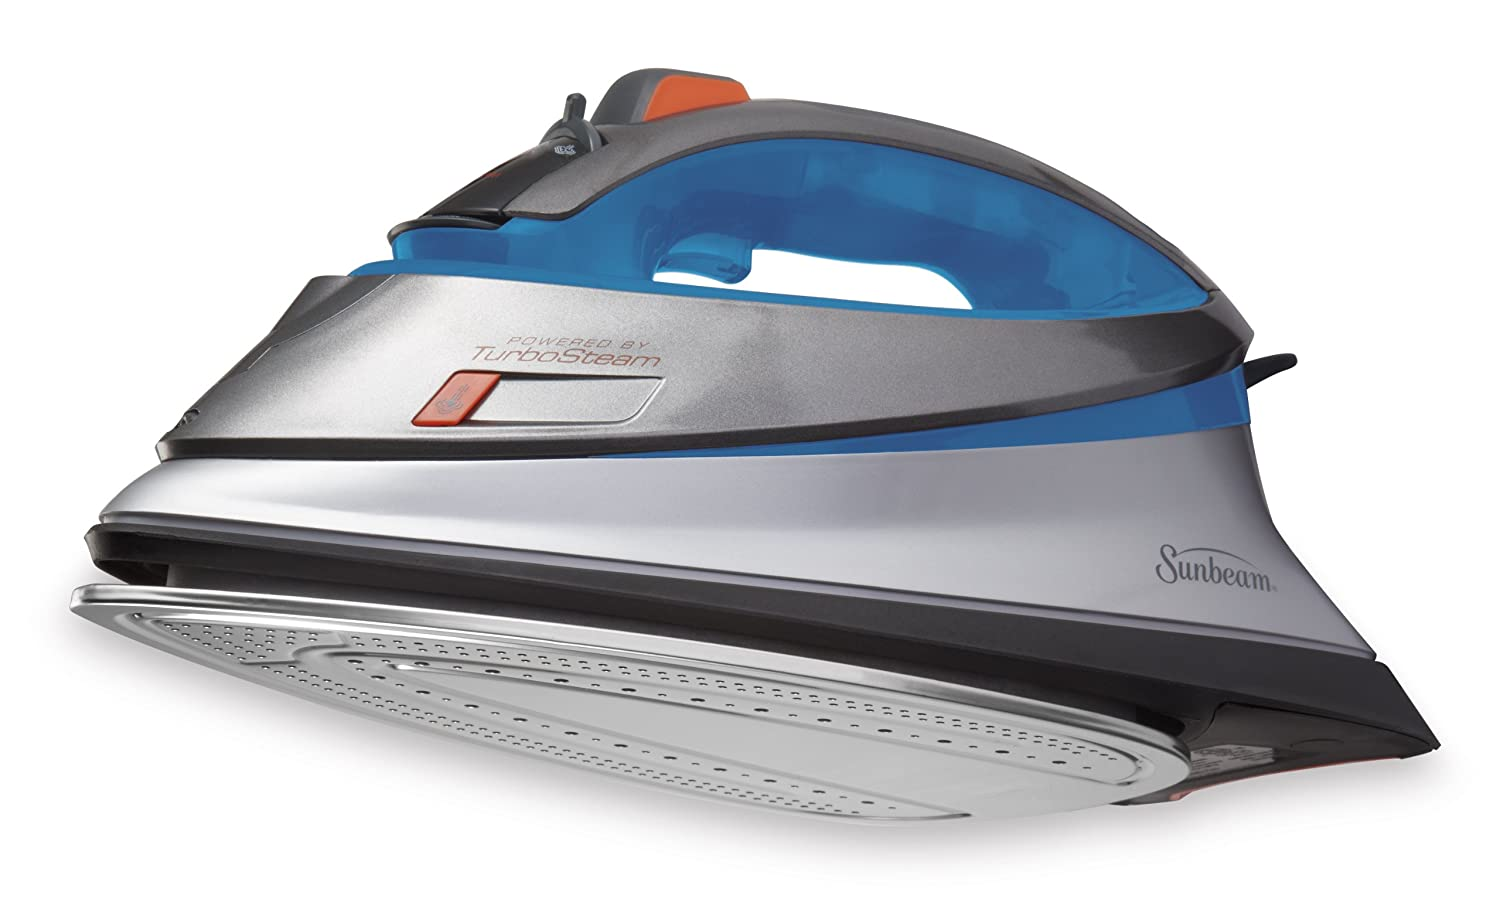 Sunbeam Turbo Iron GCSBCS100-033